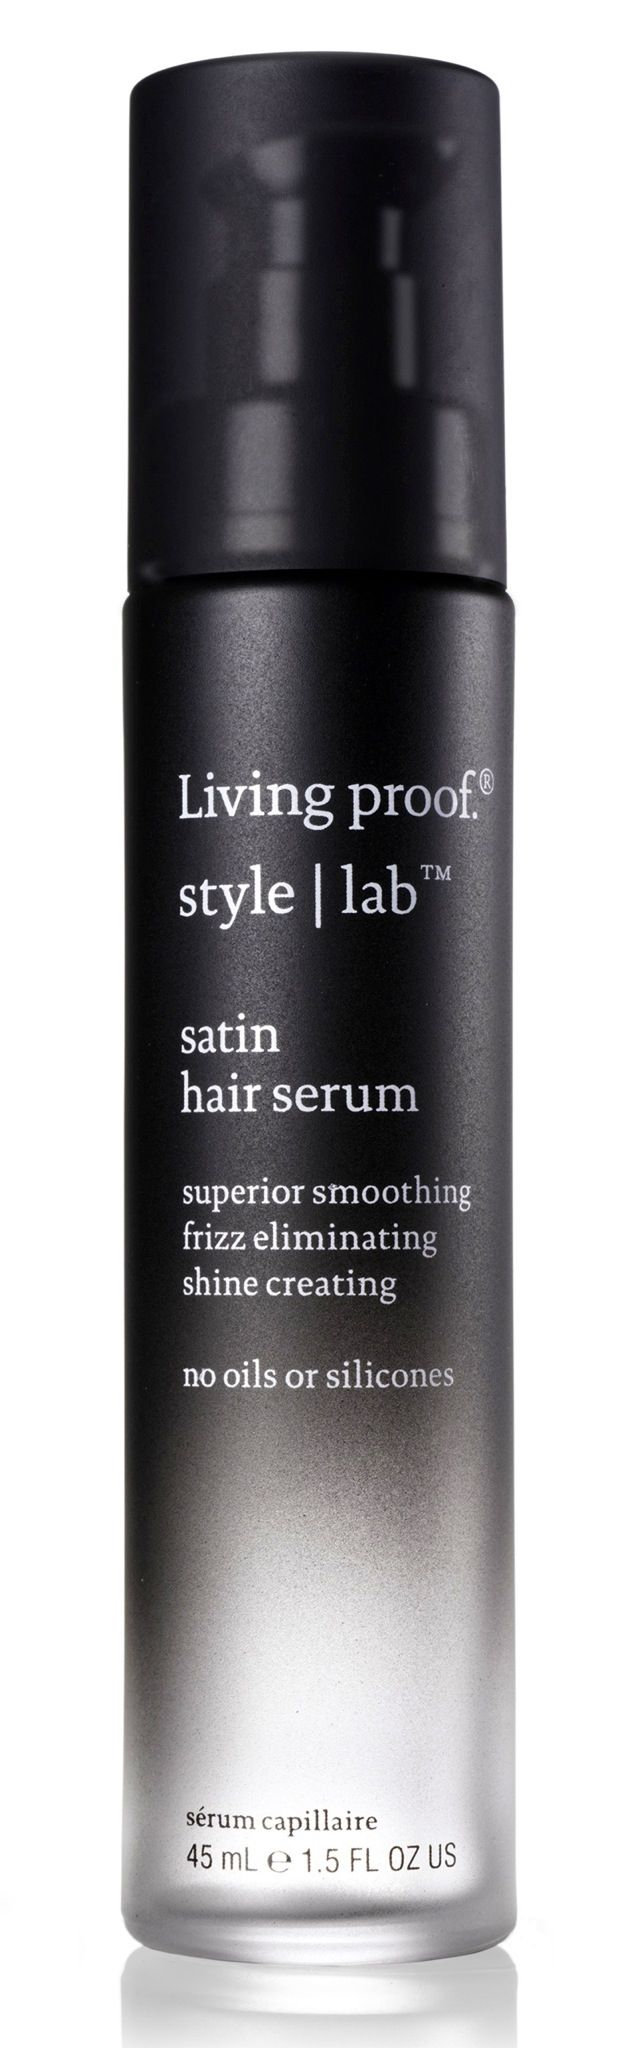 Living Proof Style Lab Satin Hair Serum: MIT scientists are behind this high-tech serum which gives gloss without the weight